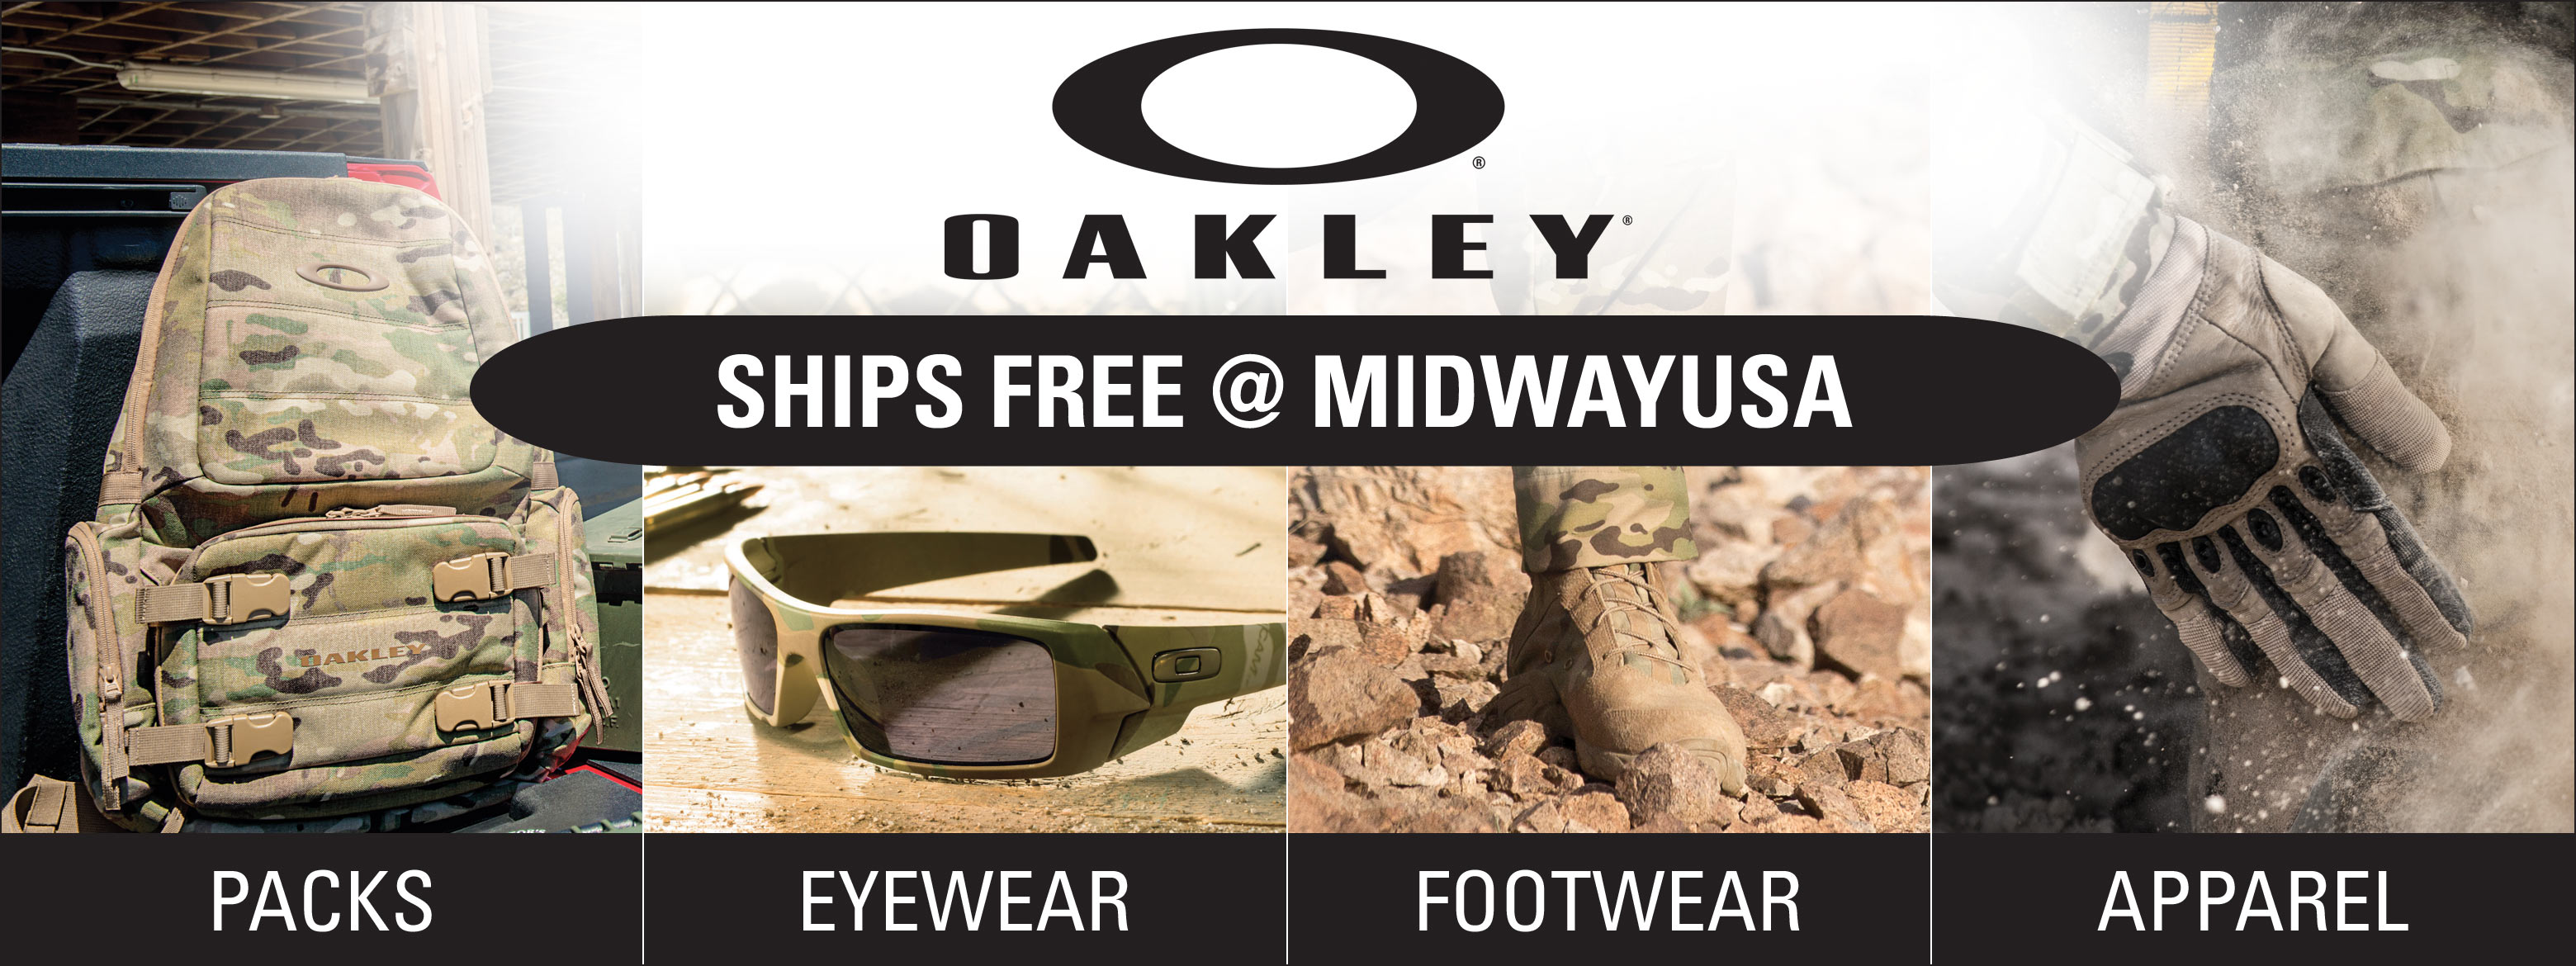 are oakley boots authorized in the army 5grl  Next